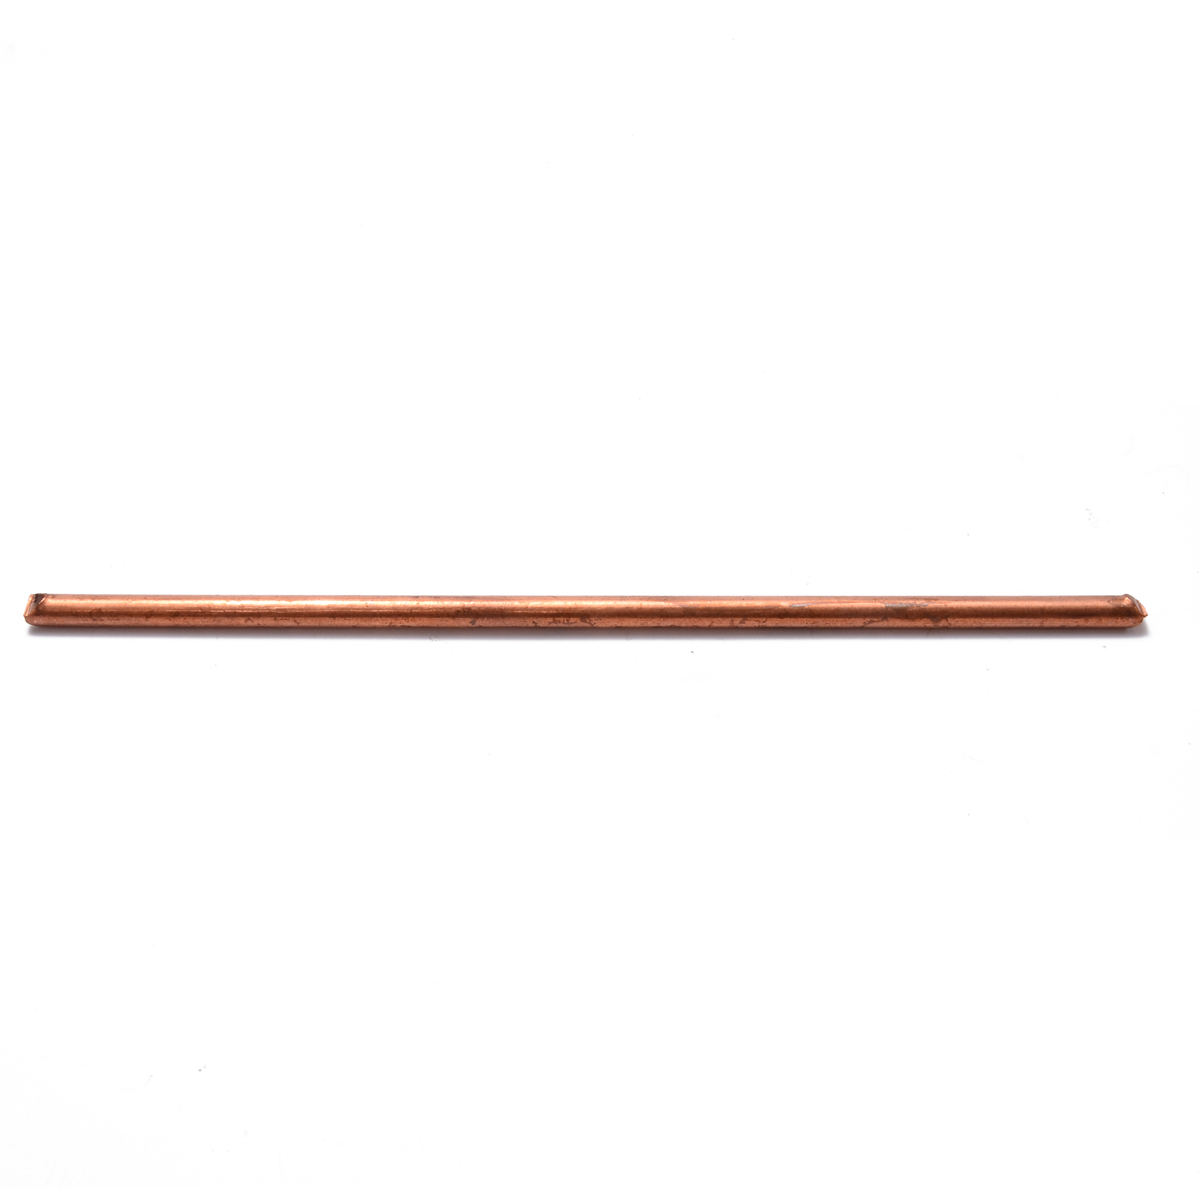 1pc 99.9% Pure Round Cooper Rod Solid Copper Cu Bar Tube 6mmx200mm Mayitr For Power Tool